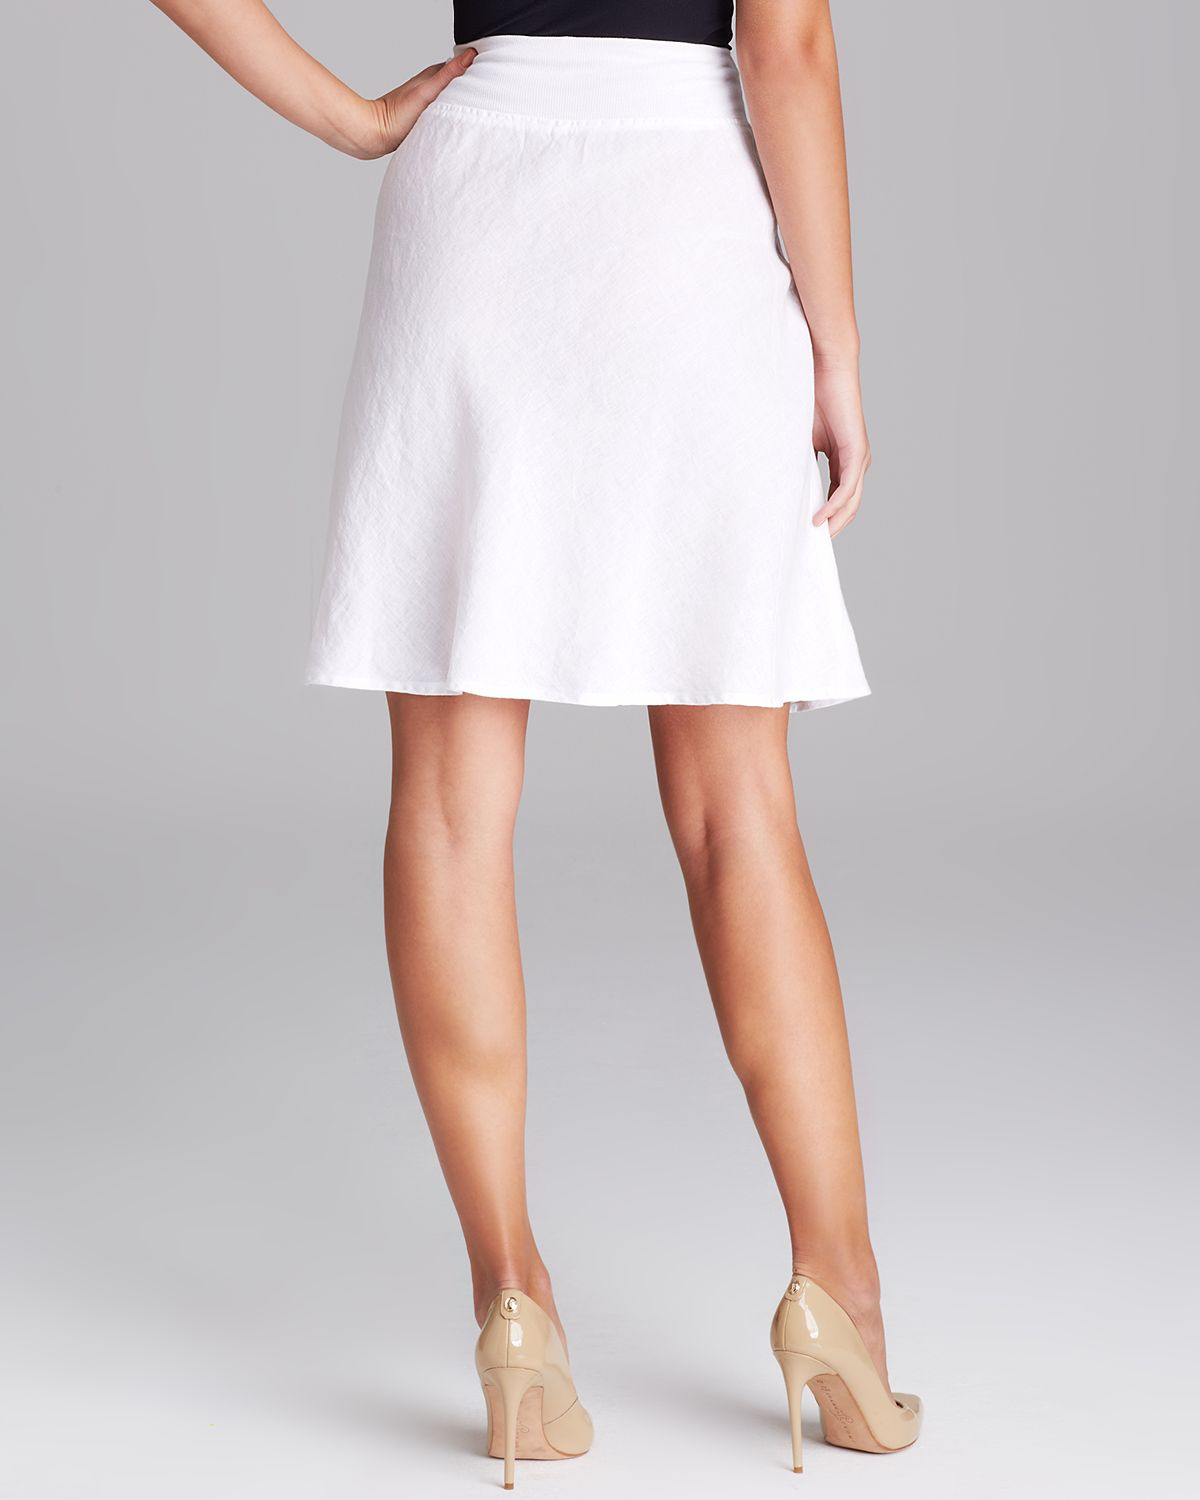 Three dots Linen Skirt in White | Lyst